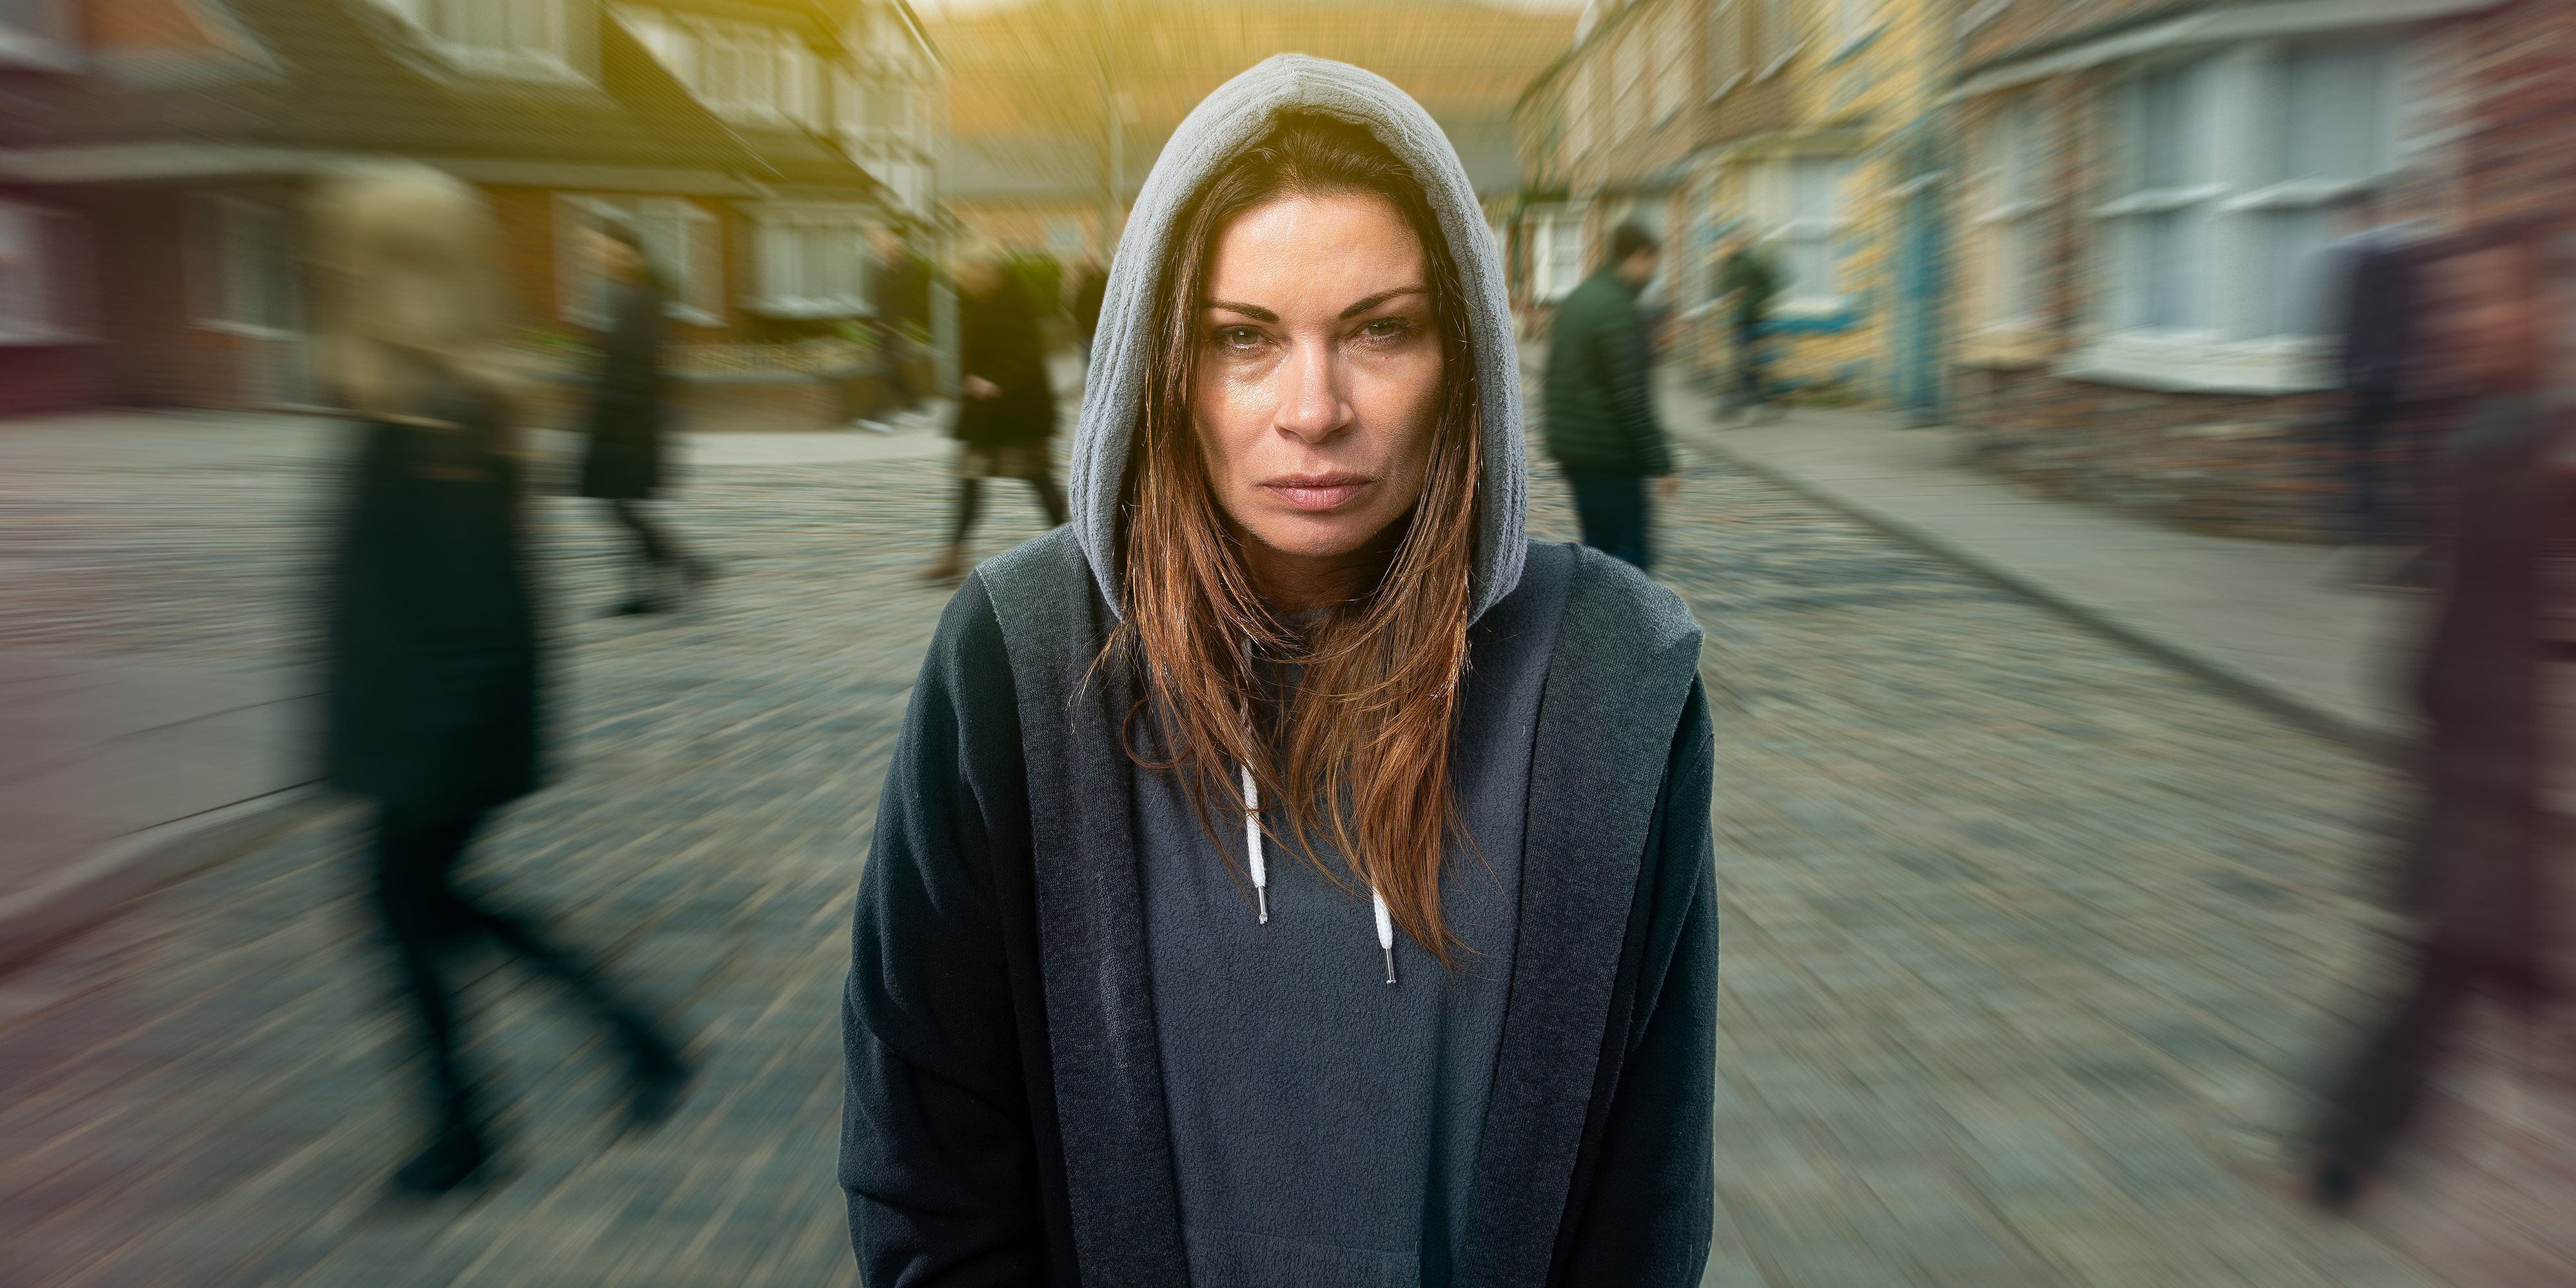 Coronation Street's Carla Connor will see three dead characters in upcoming episode